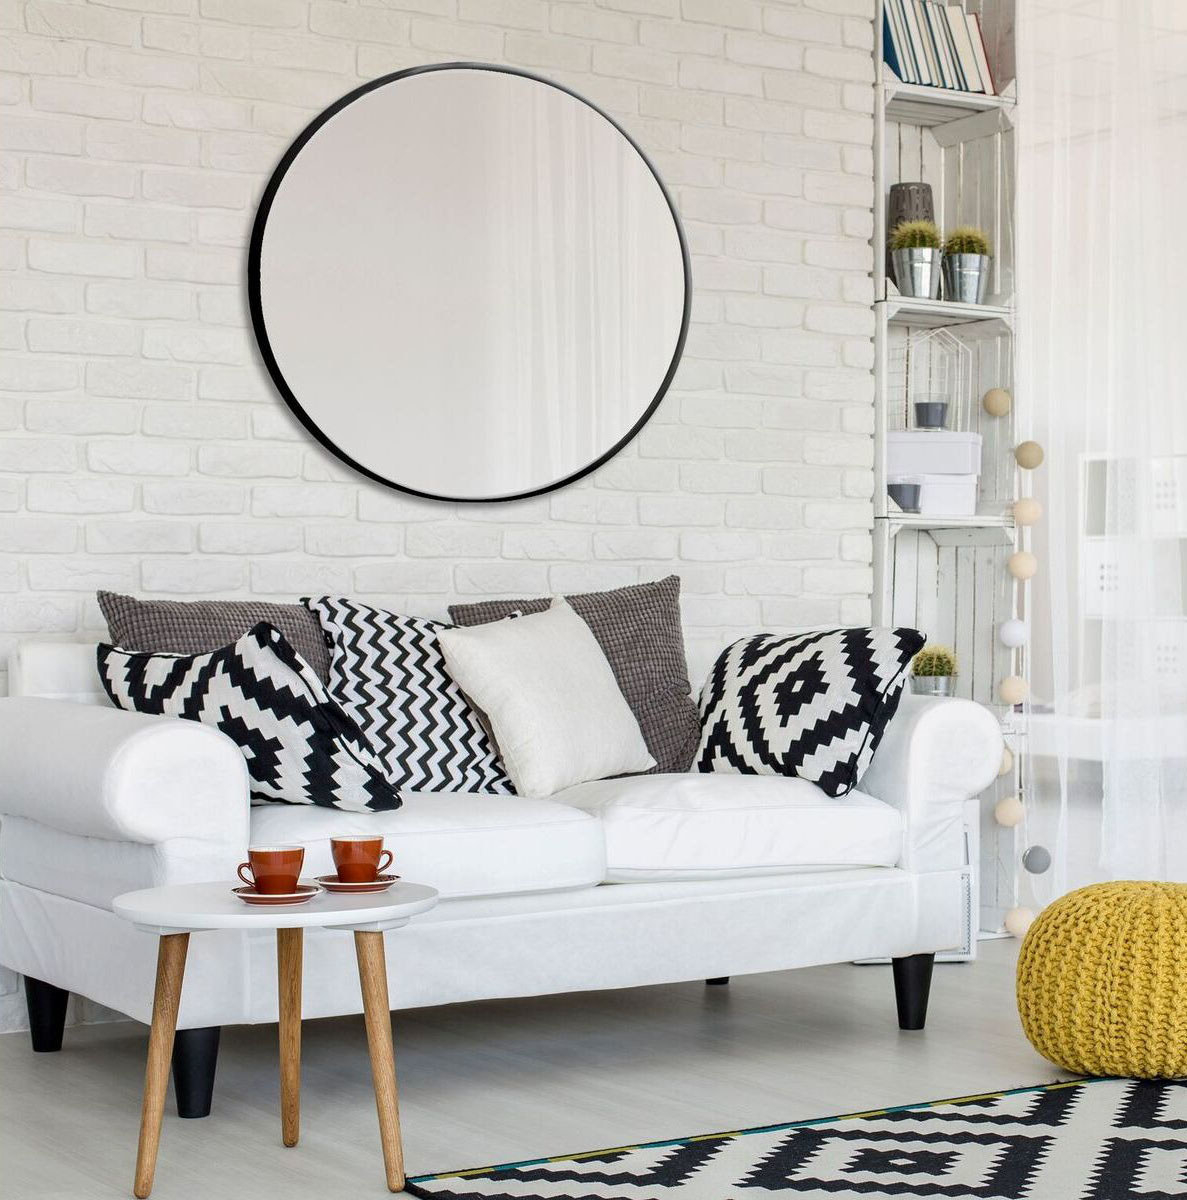 The black-framed mirror on a brick wall in a living room scene